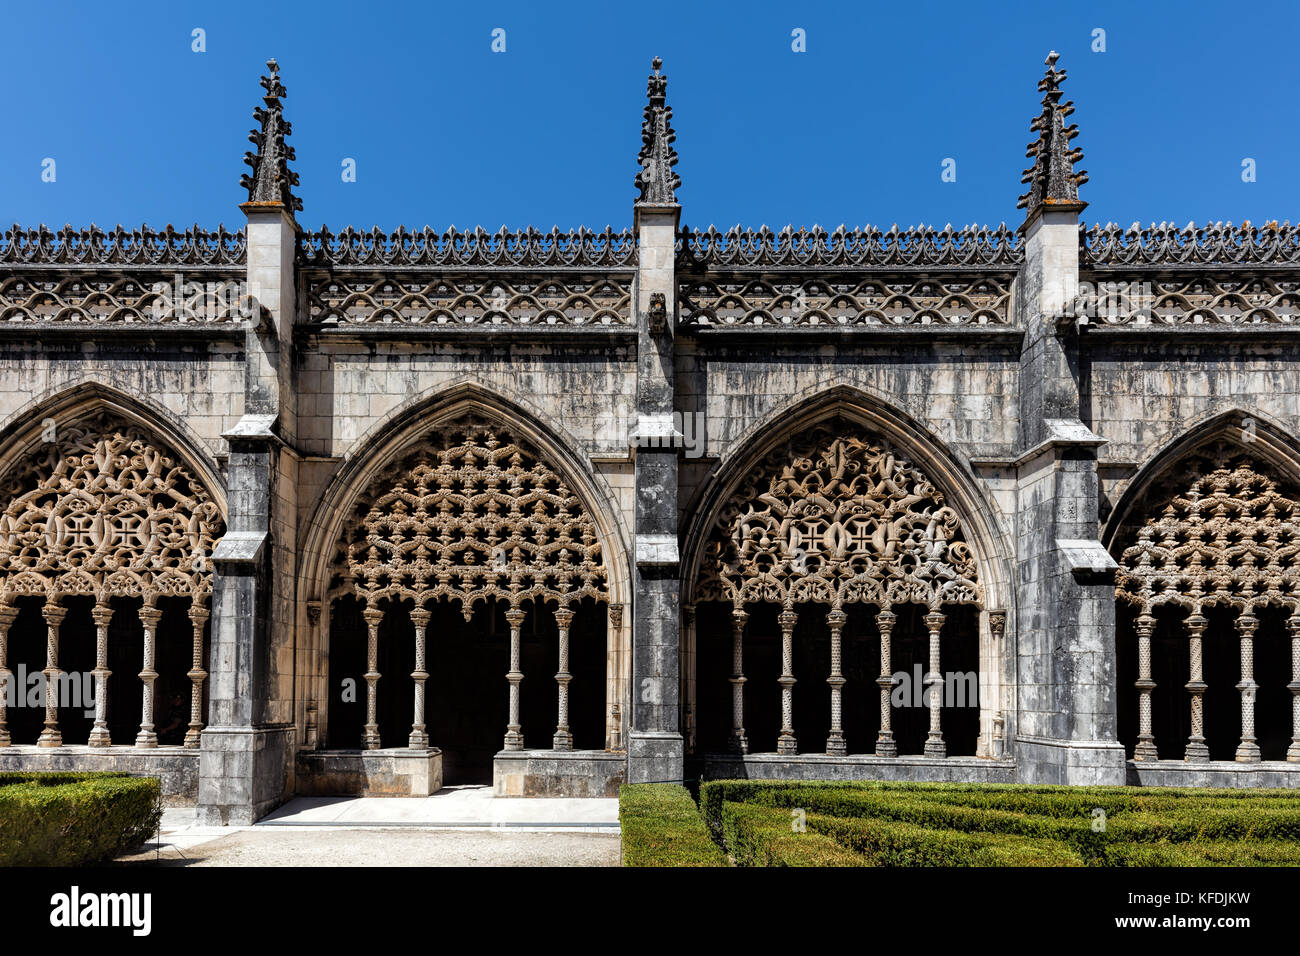 Cloisters of the Batalha Monastery, a prime example of Portuguese Gothic architecture, UNESCO World Heritage site - Stock Image